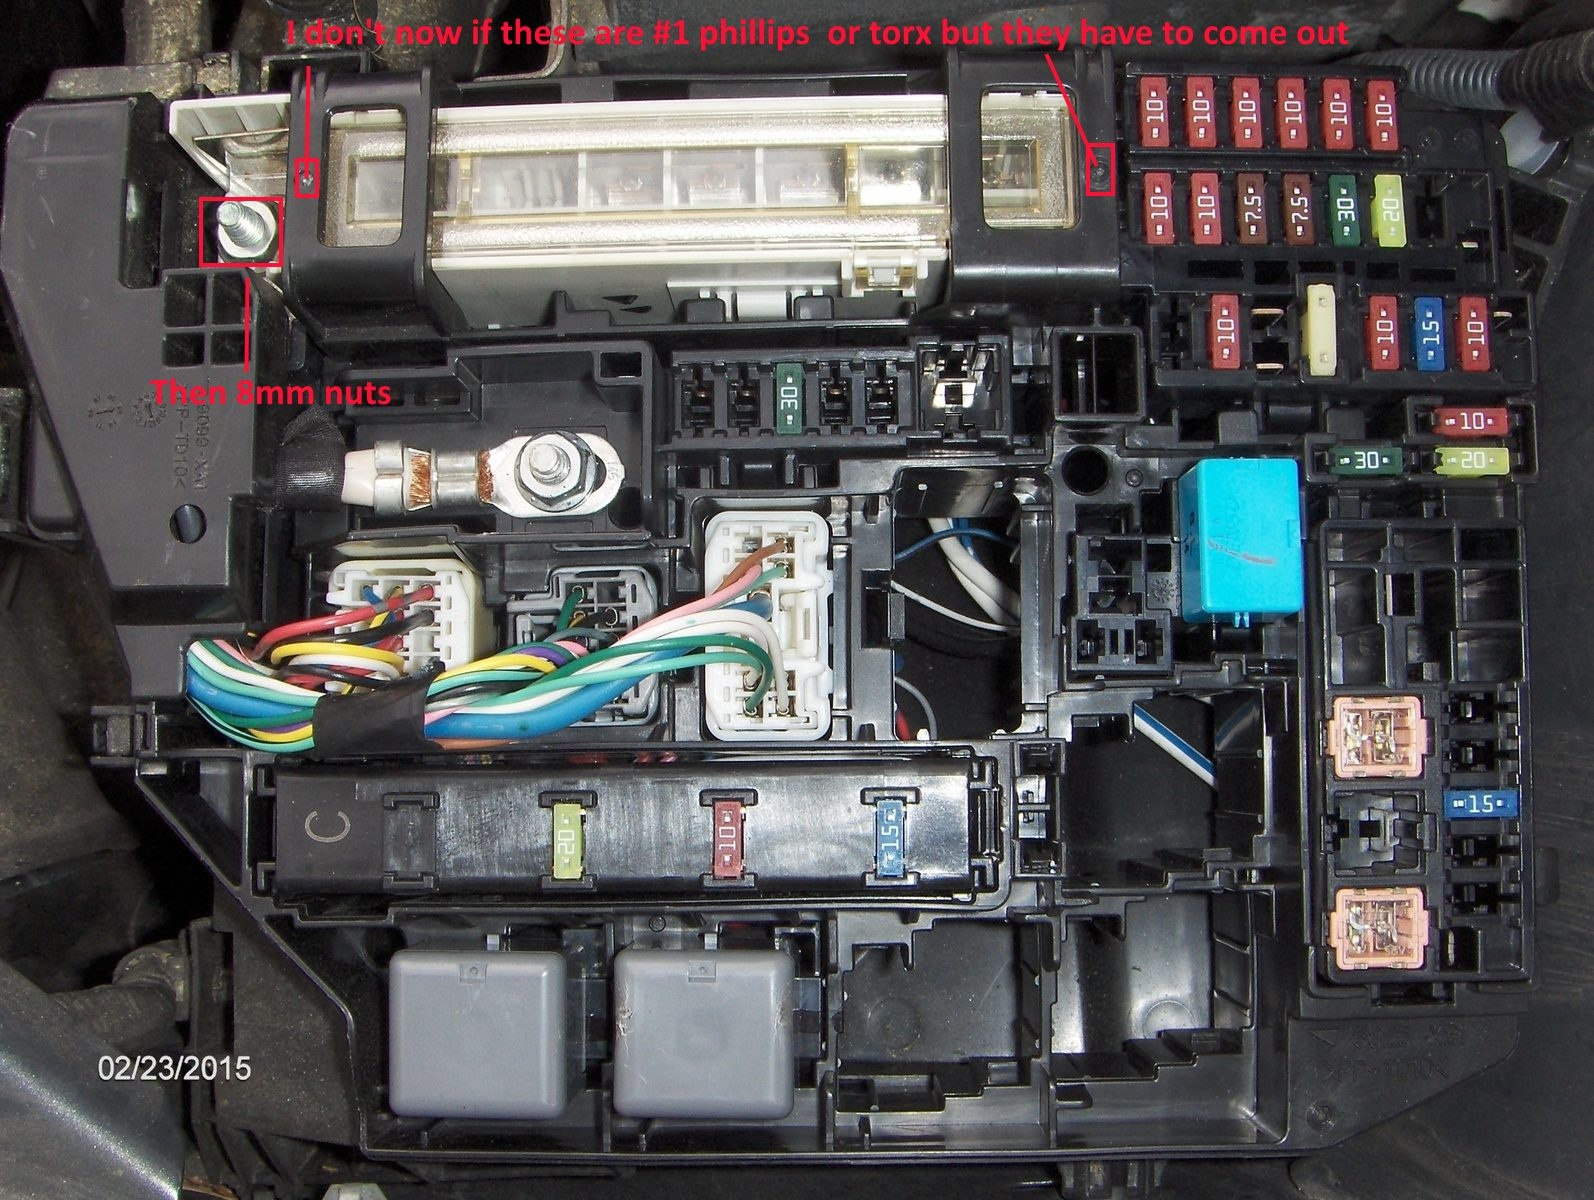 2011 Nissan Altima Fuse Box Diagram Wiring Library Toyota Corolla Questions How Do I Change The Alternator Quest 2009